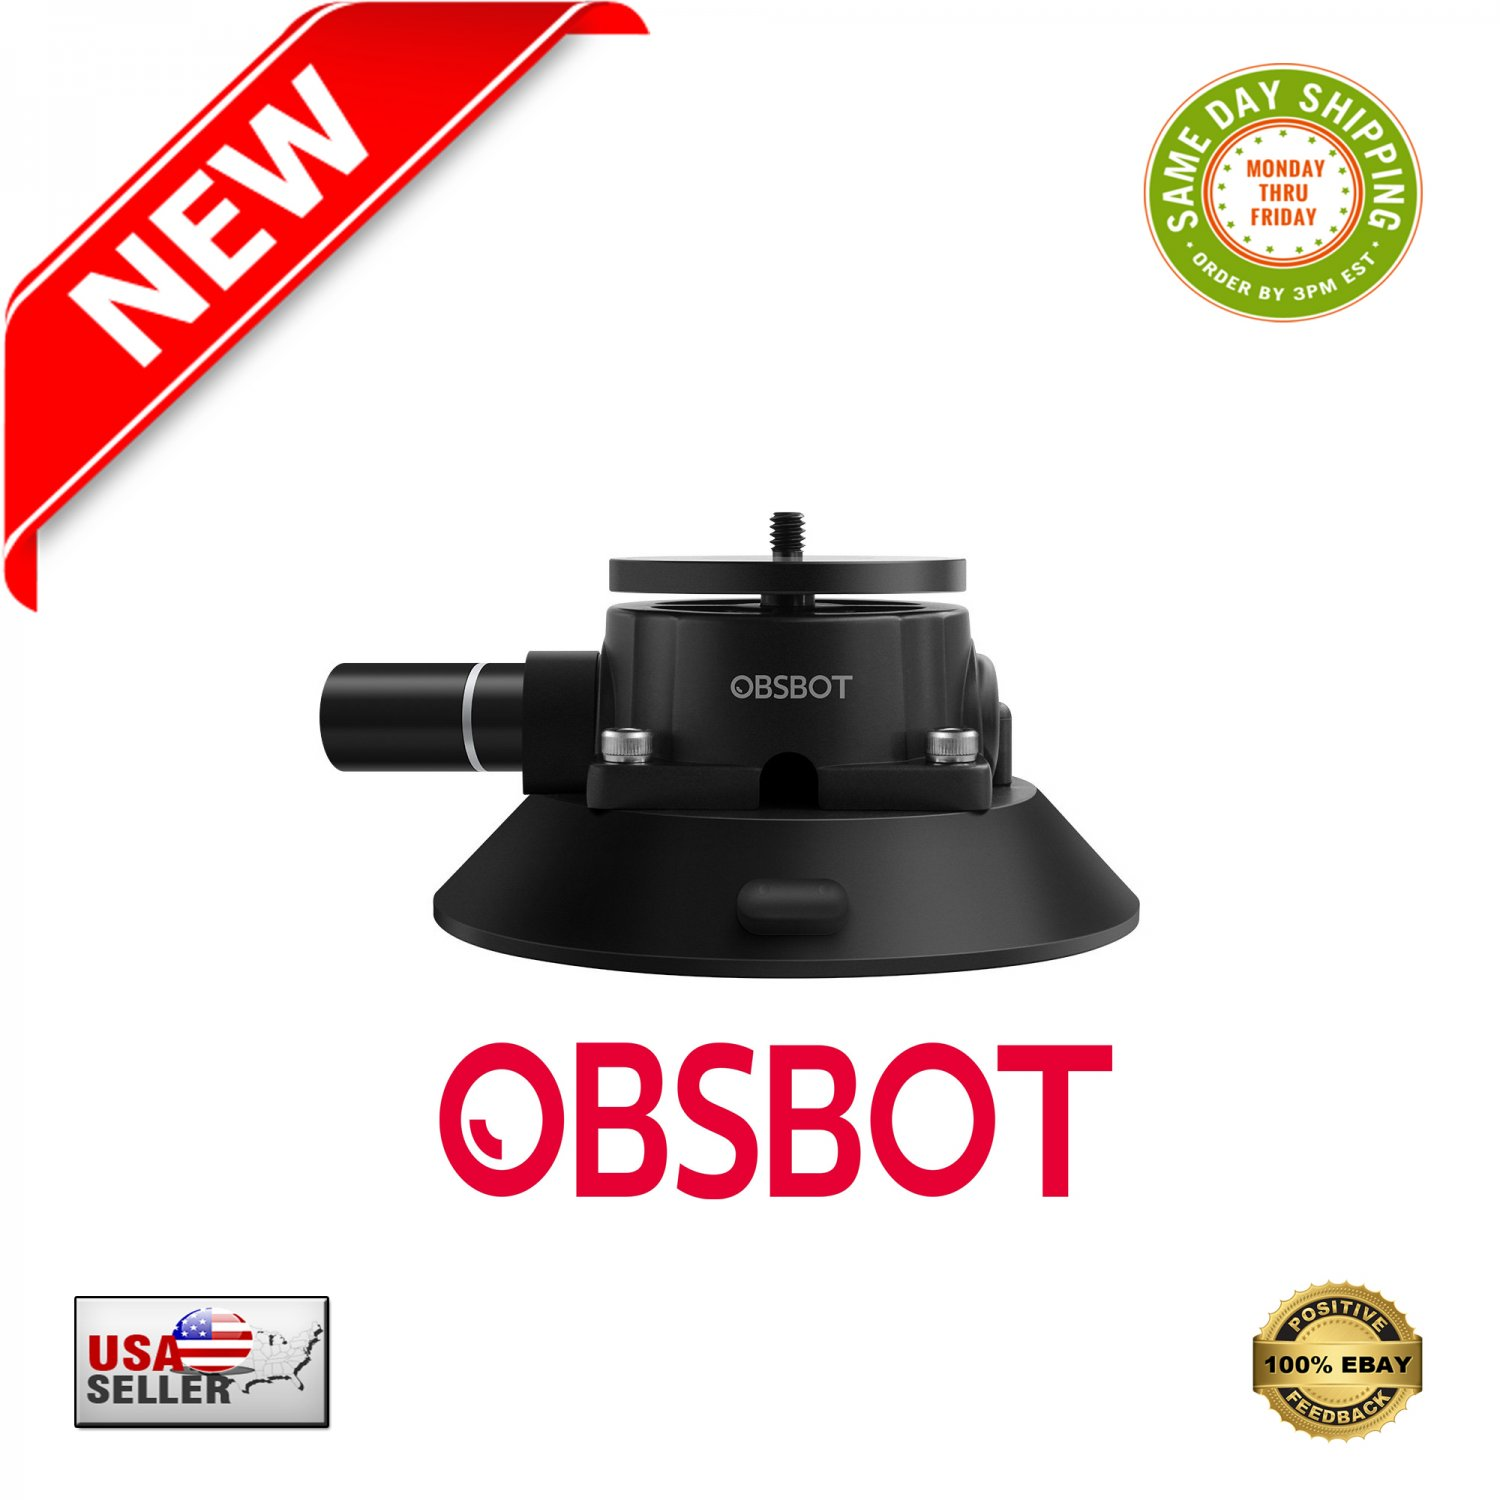 � Industrial-Strength Suction Cup Mount for OBSBOT TAIL Auto-Director AI Camera �